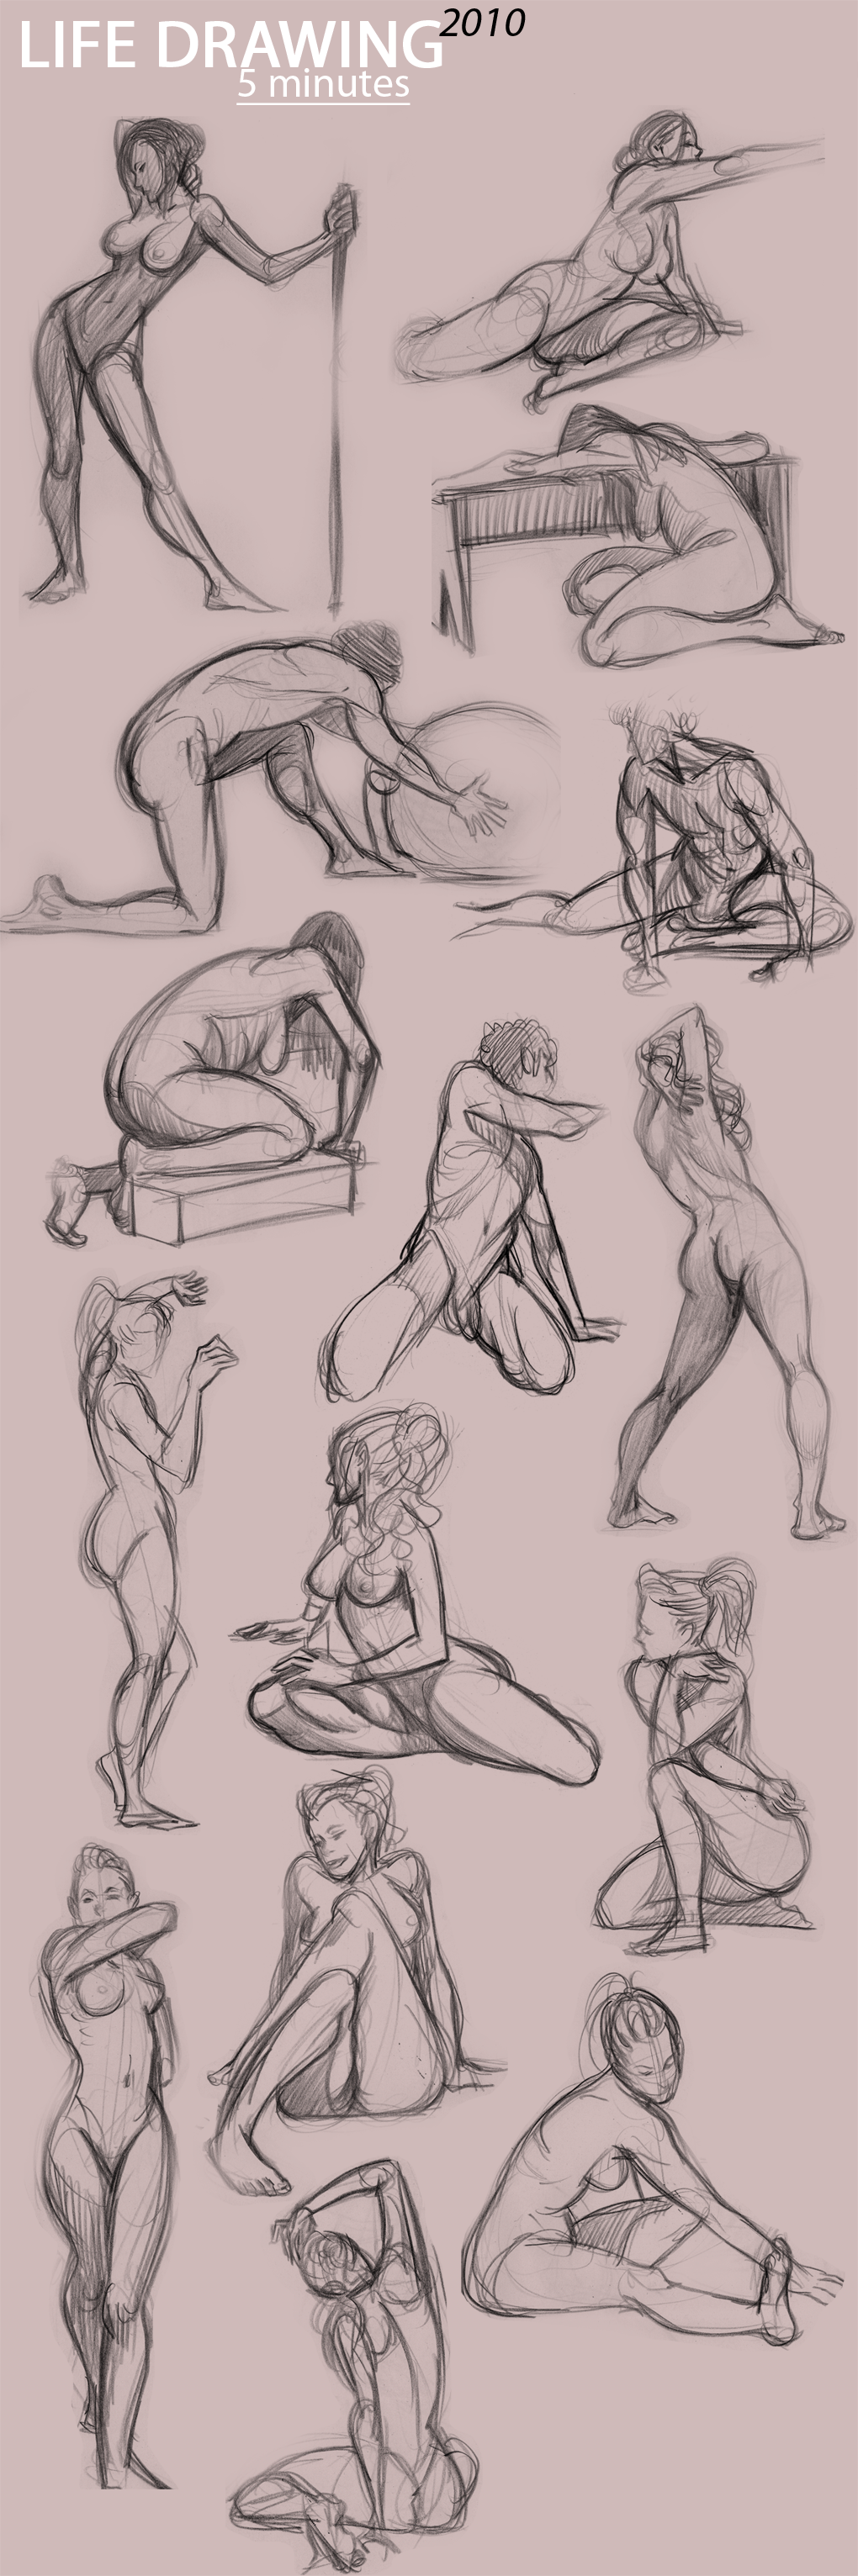 Female body pose reference   characters   Pinterest   Life drawing ...